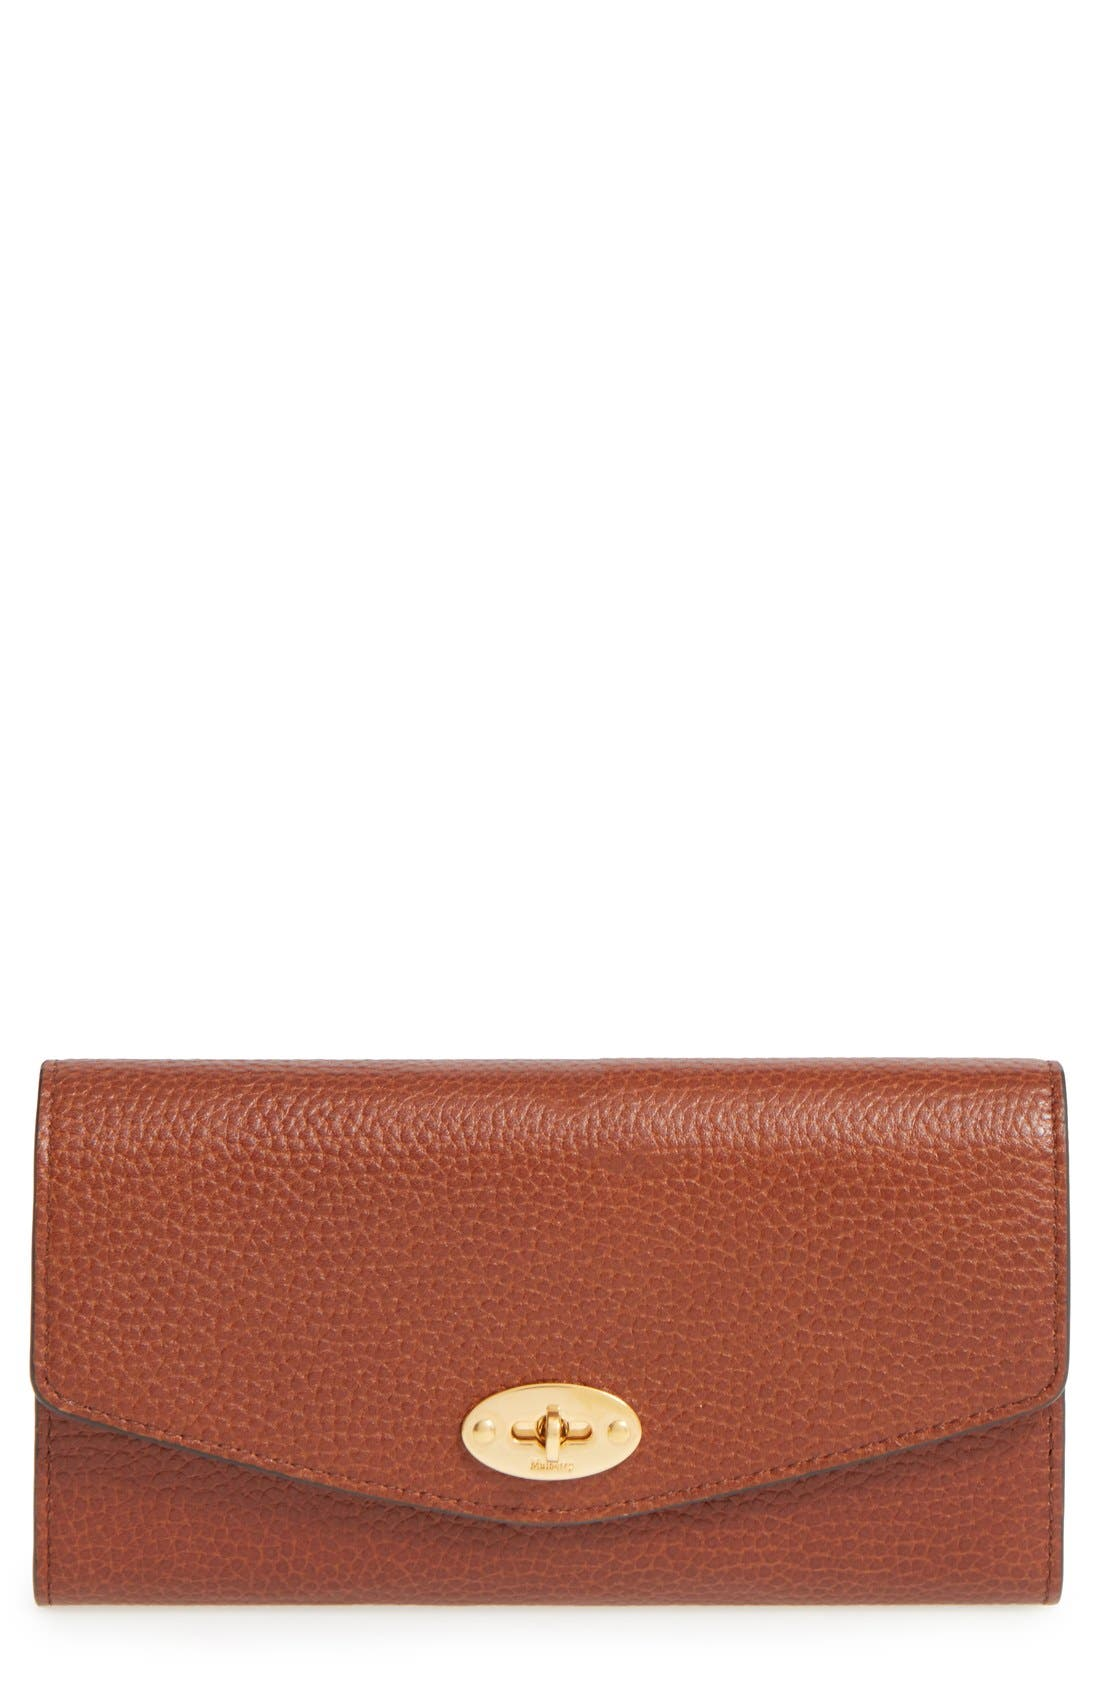 Alternate Image 1 Selected - Mulberry 'Postman's Lock' Leather Wallet